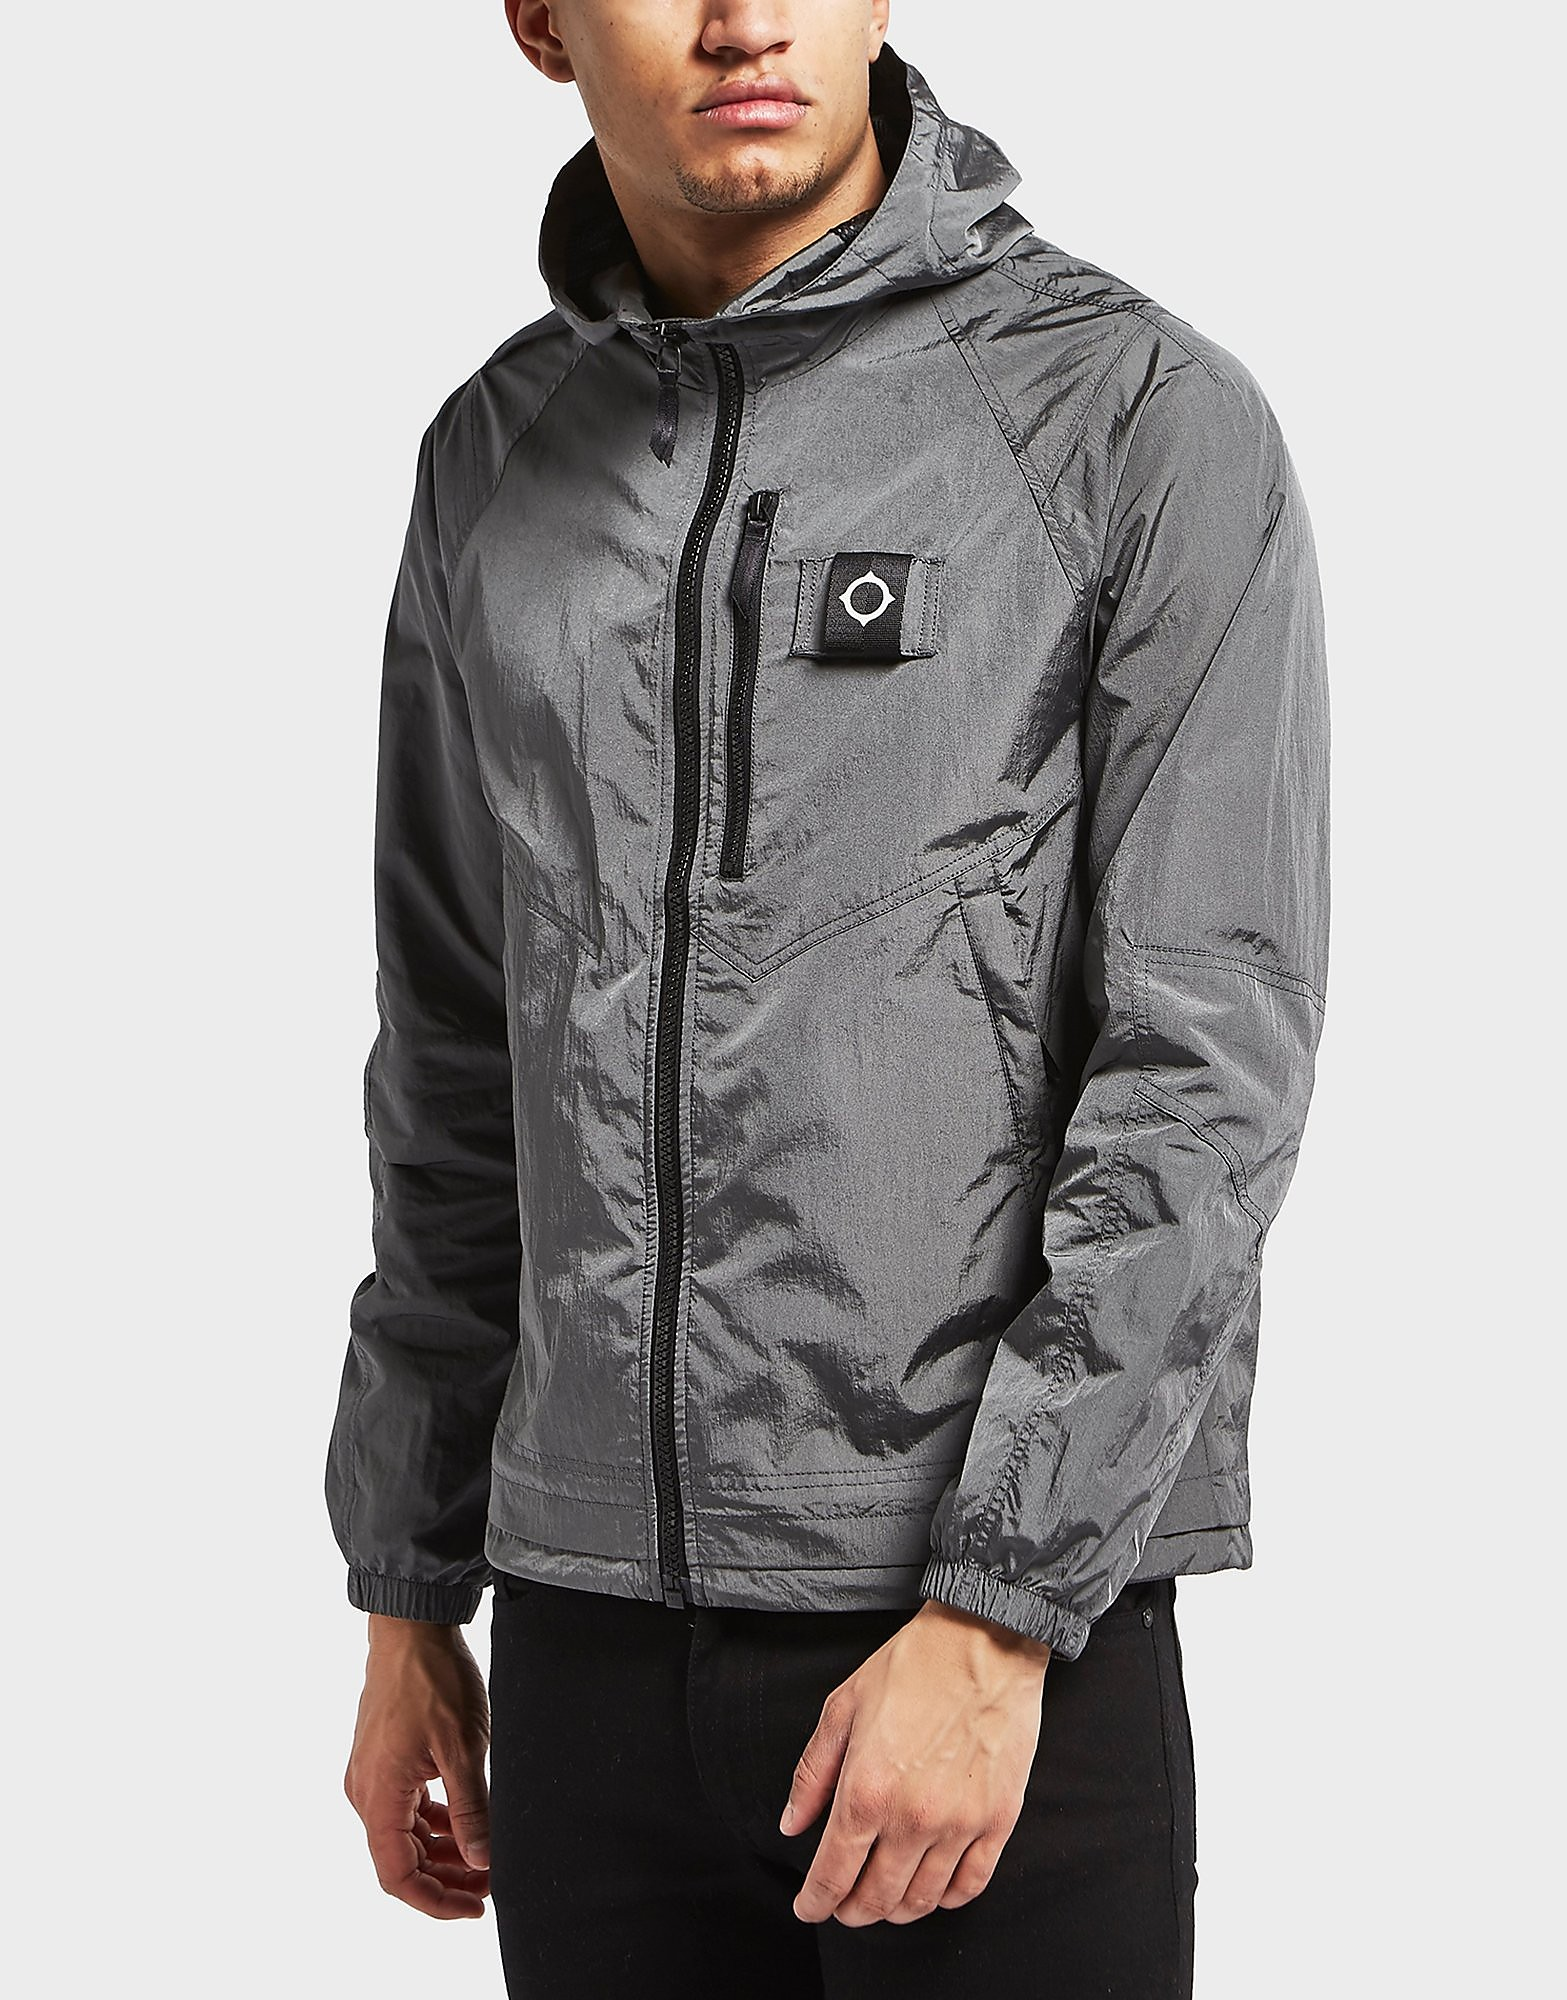 MA STRUM Pegasus Nylon Lightweight Jacket